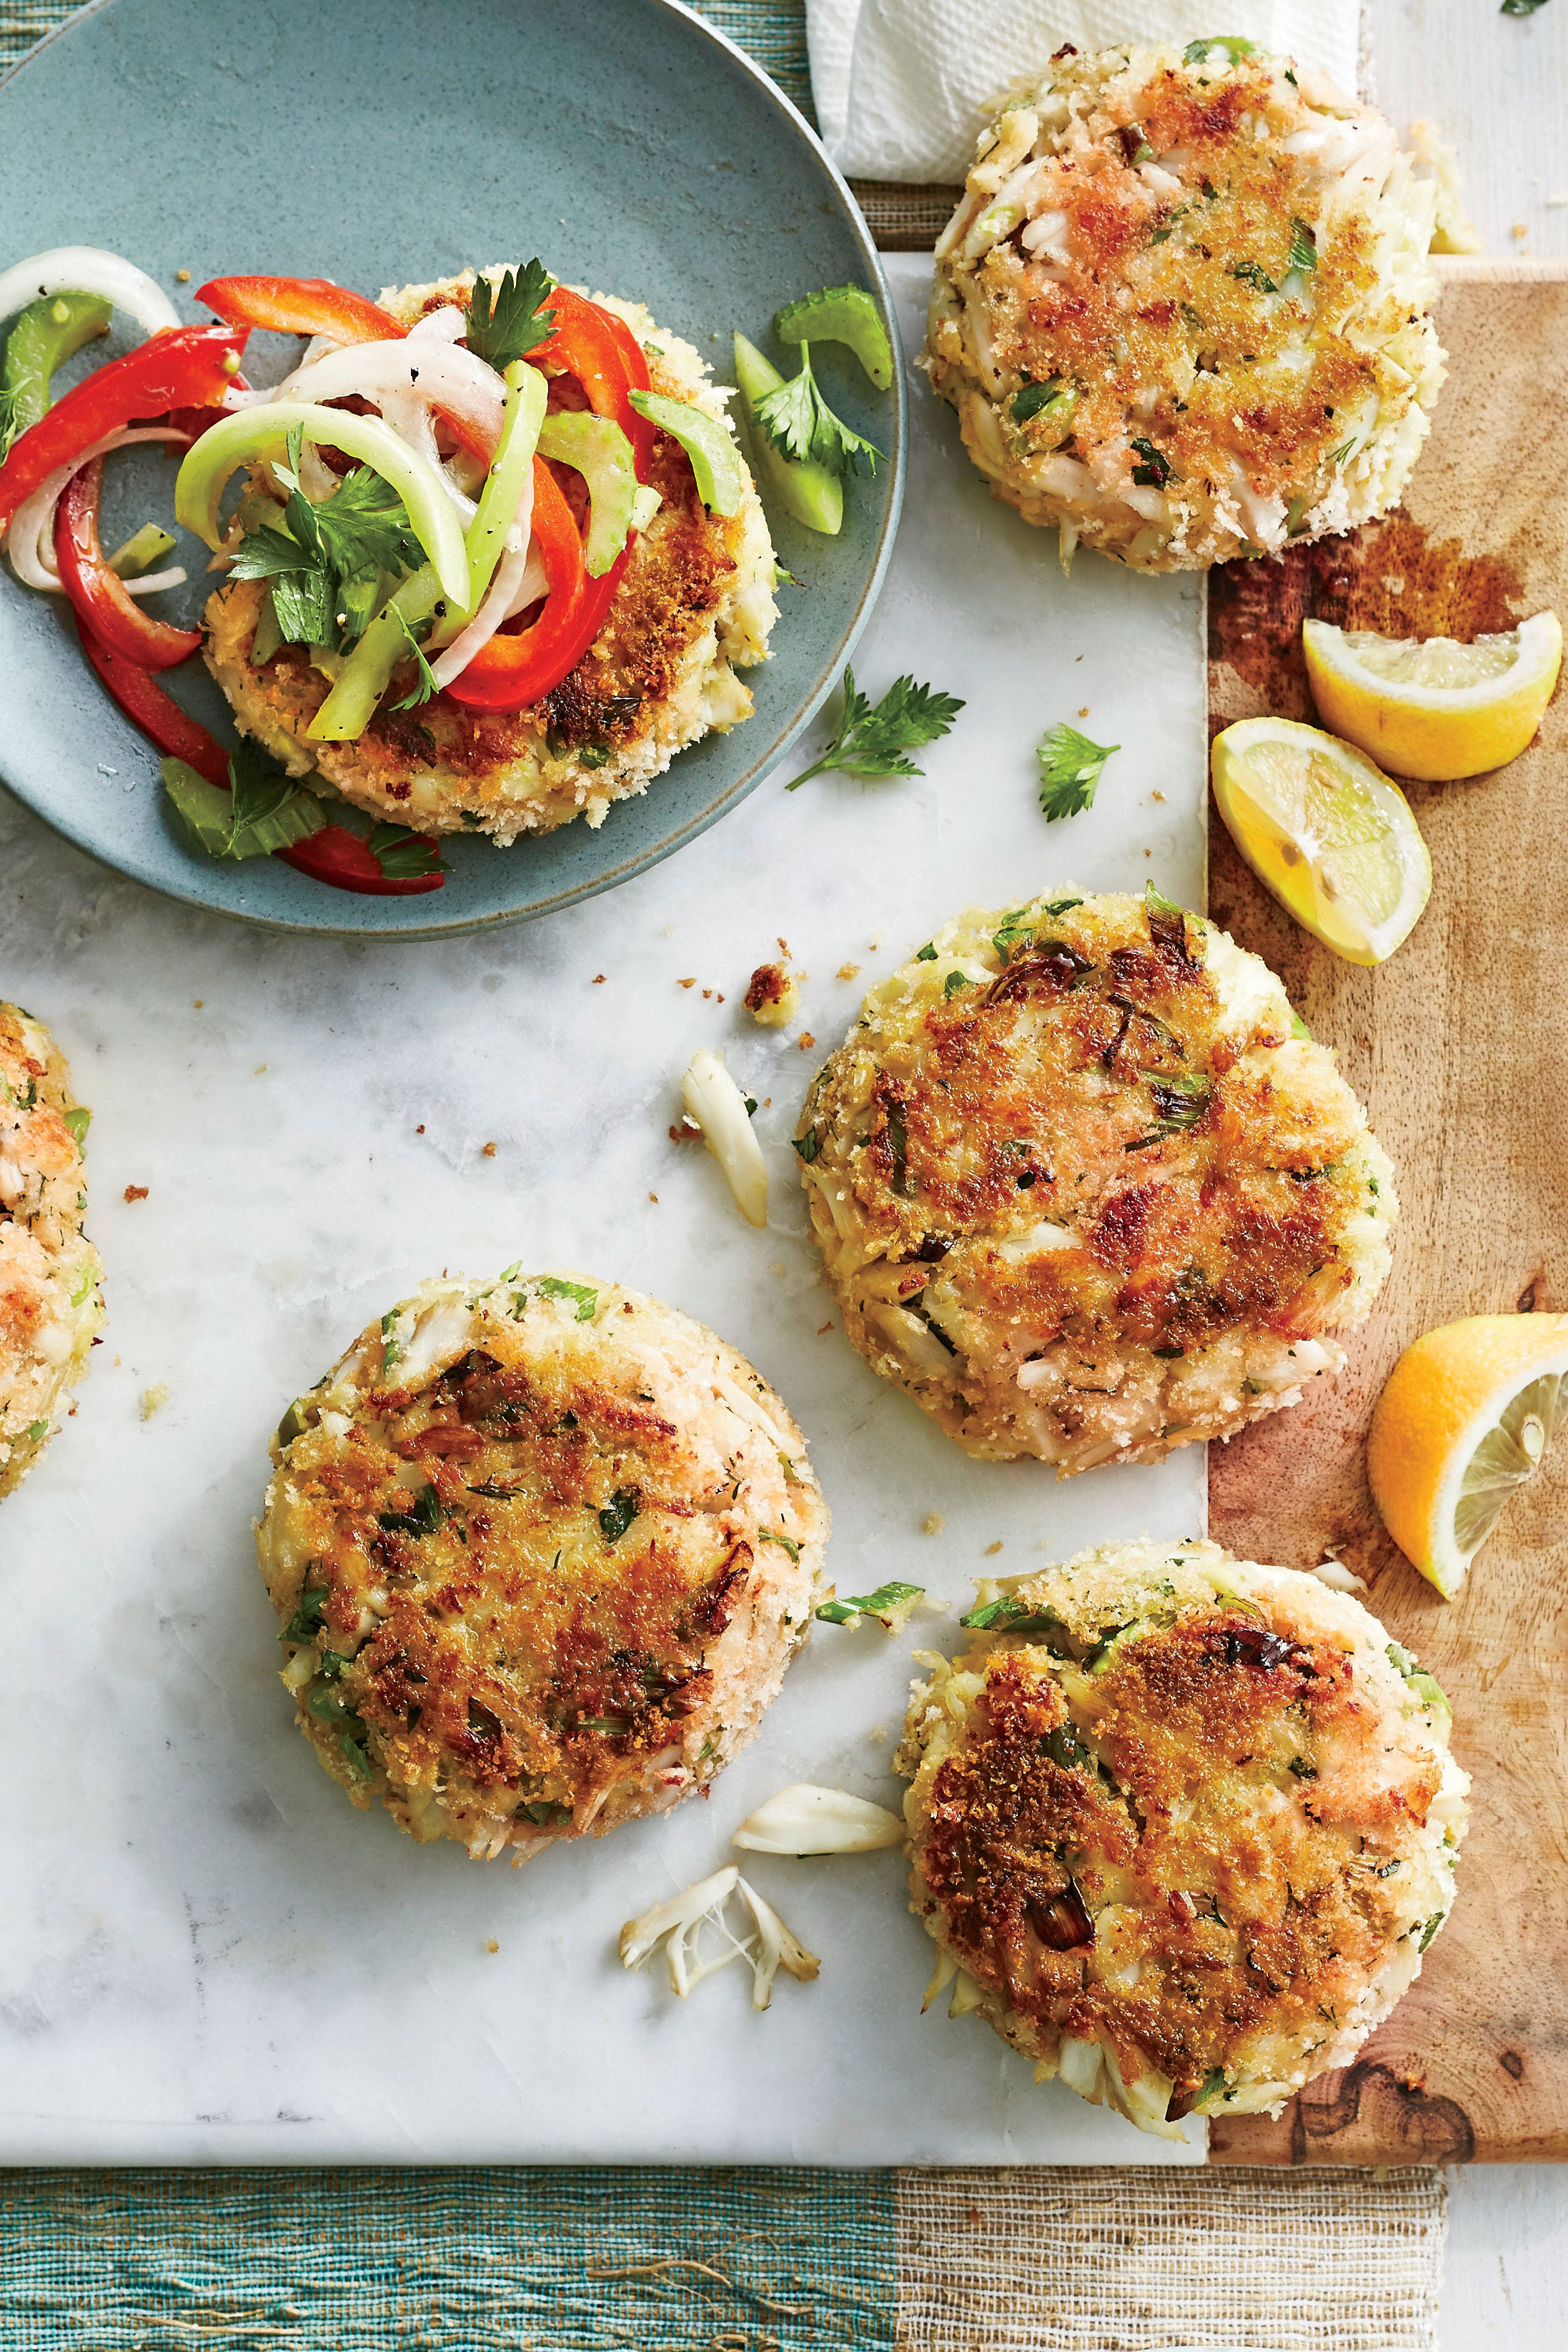 How to Cook Crab Cakes in the Oven